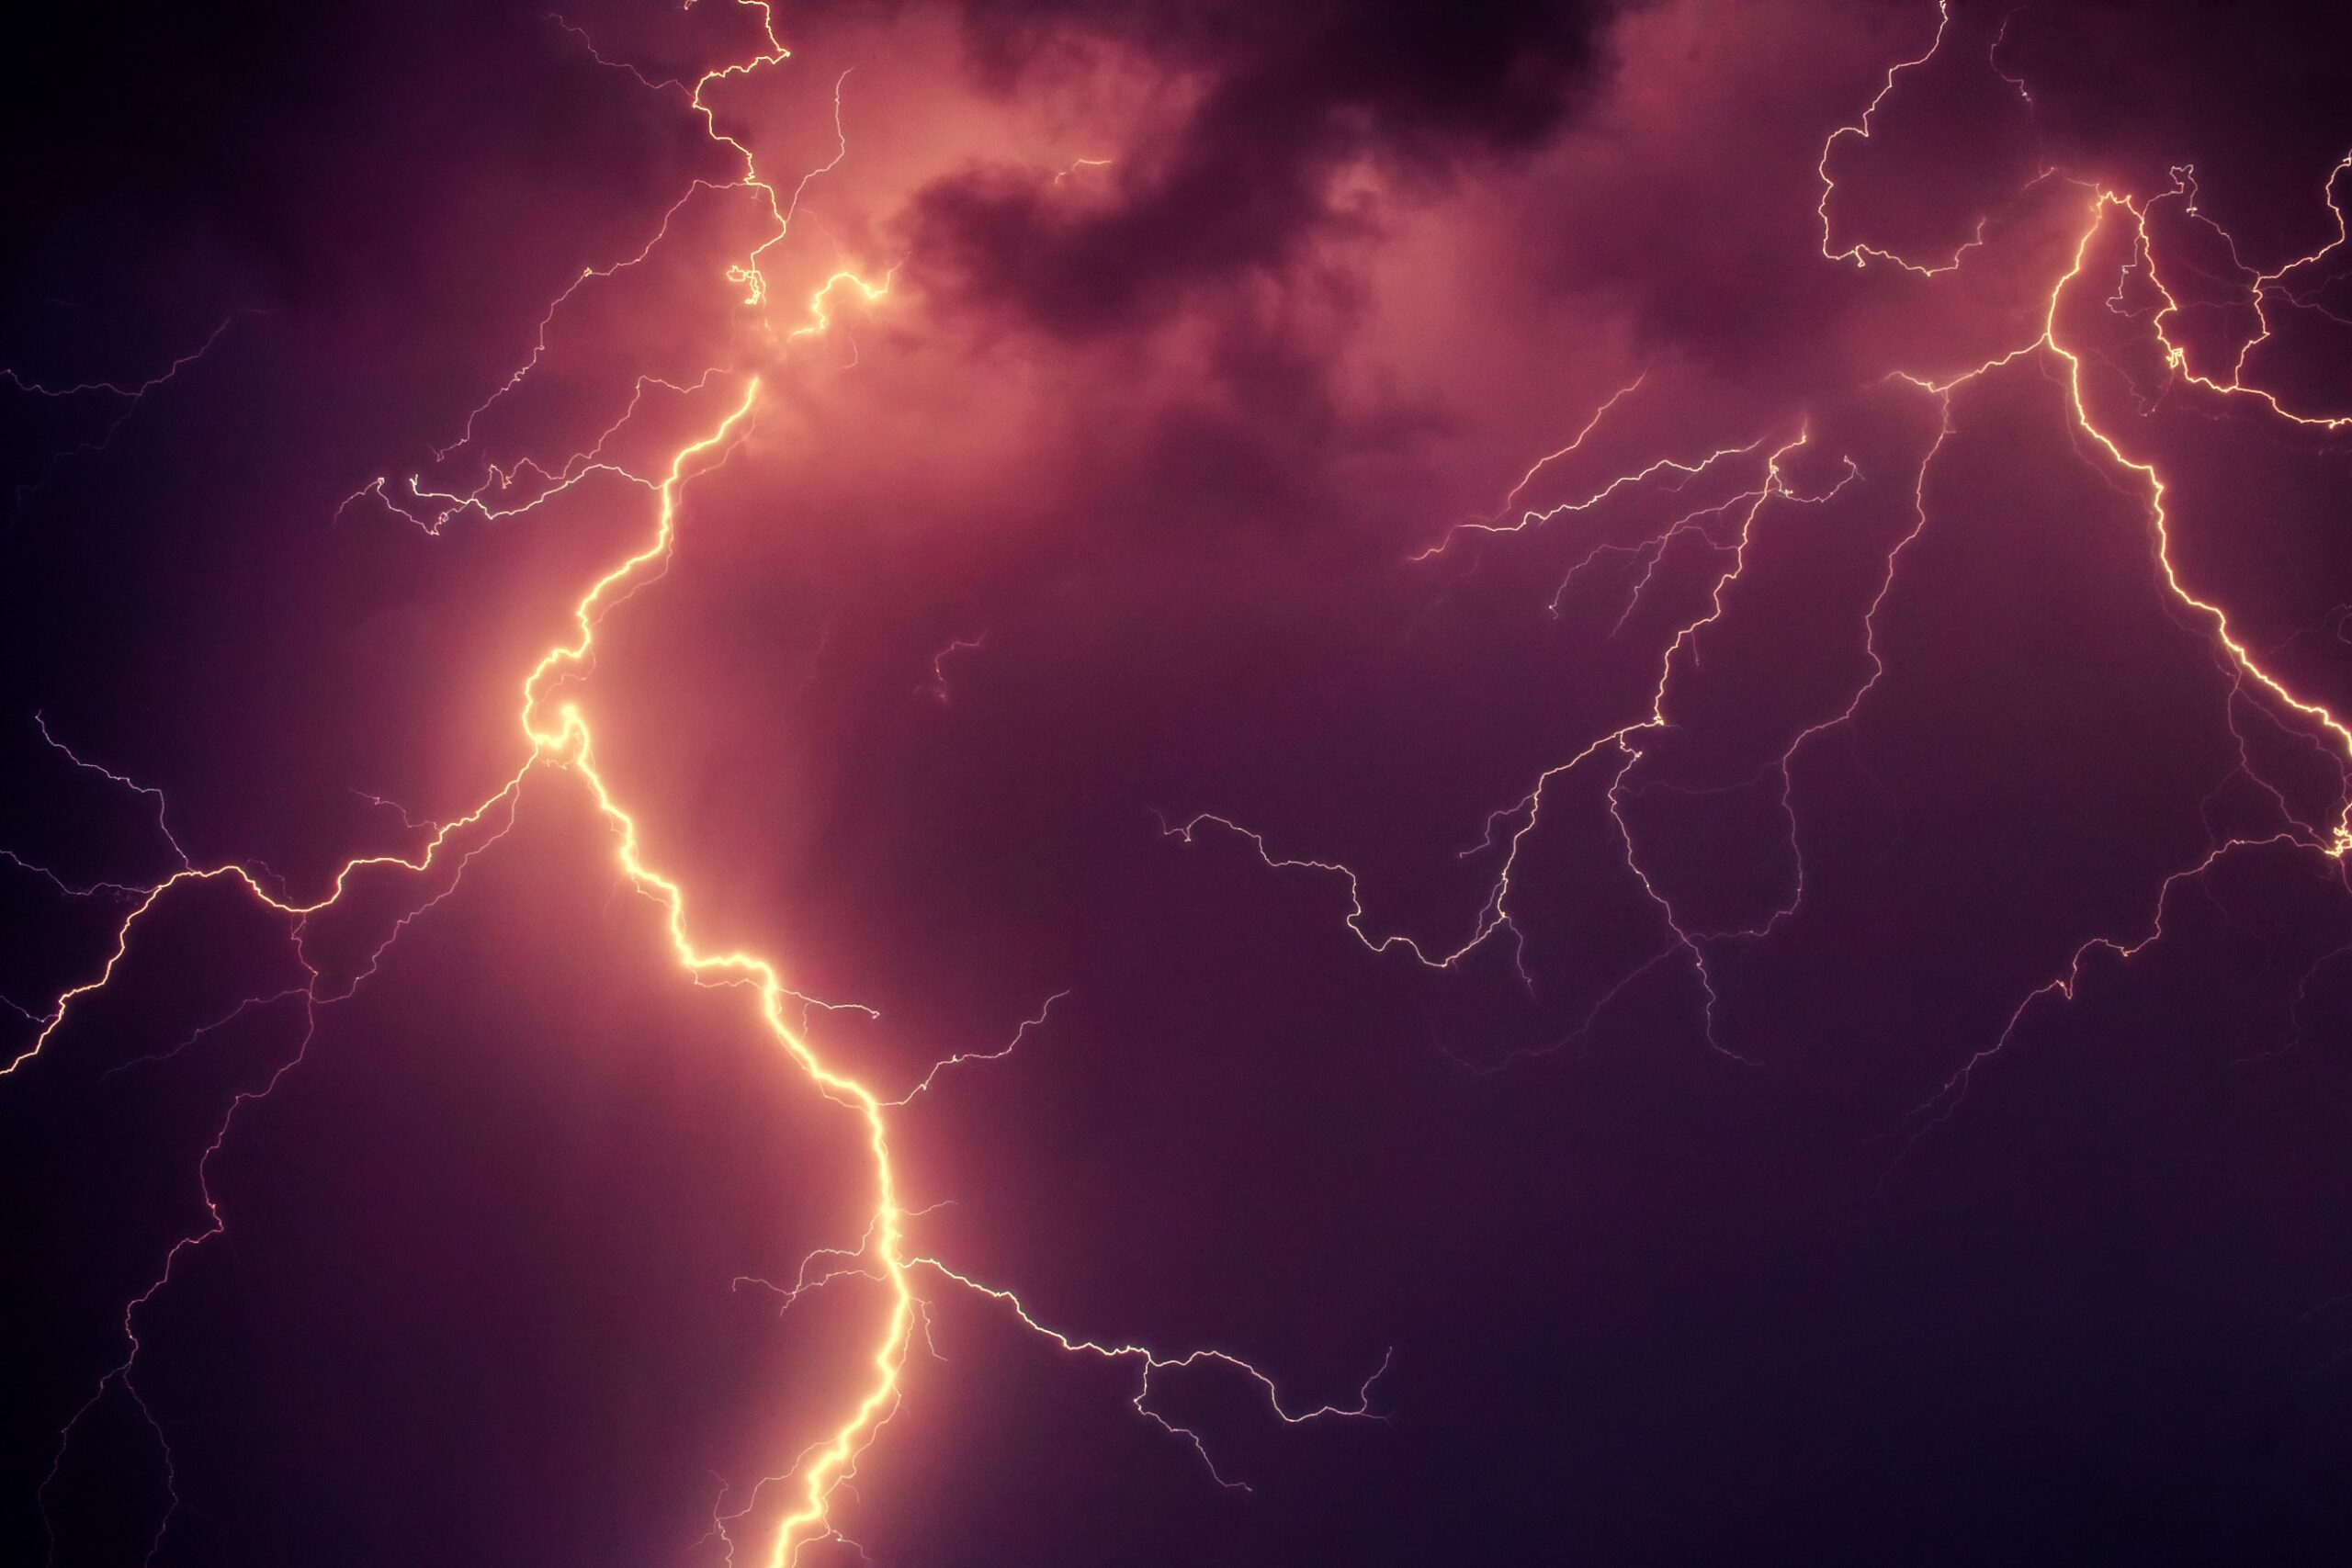 What if We Could Harness the Power of Lightning?